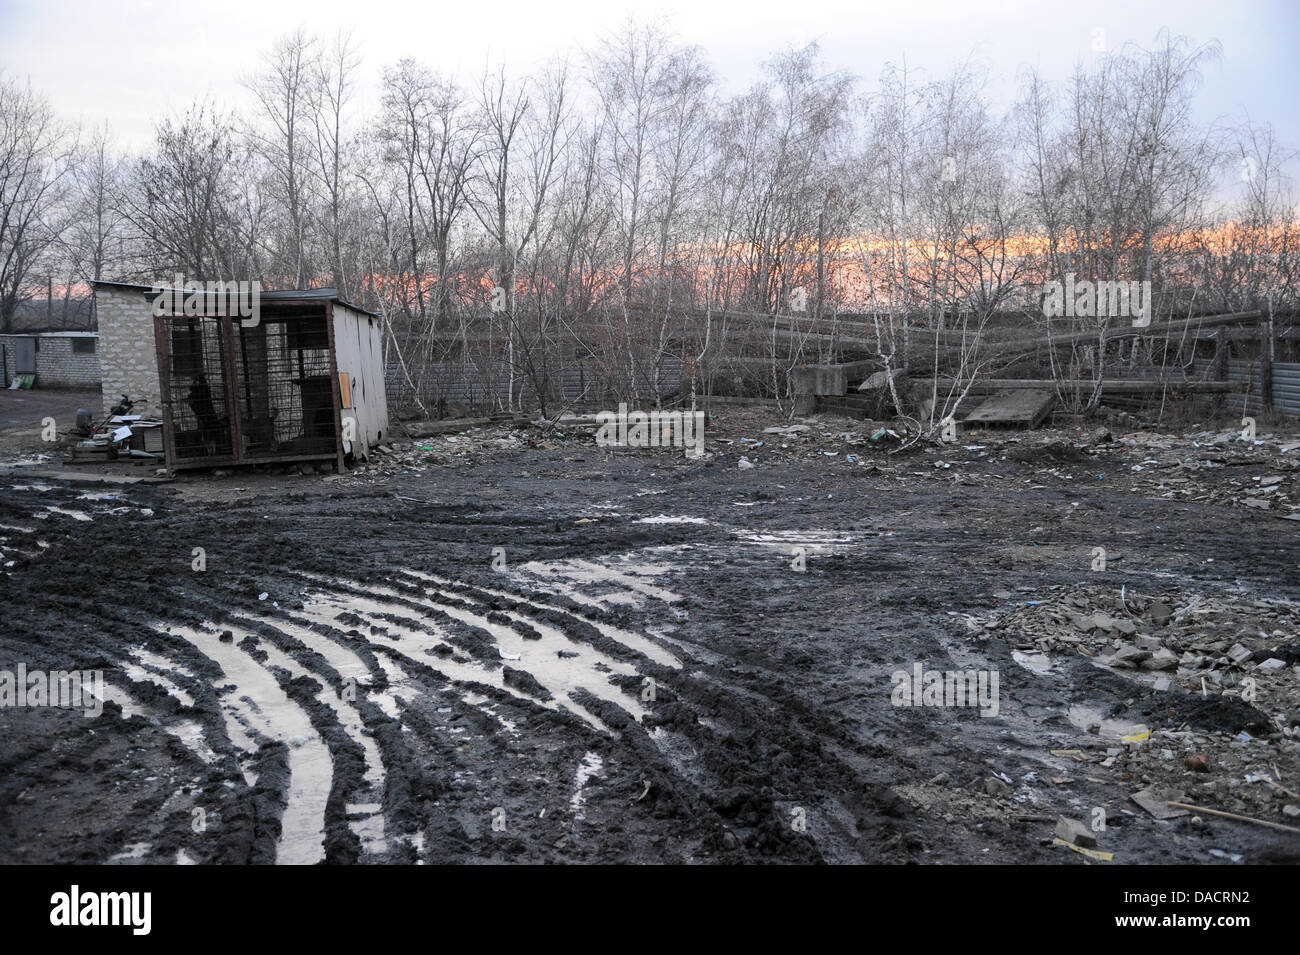 A warped and ramshackle kennel sits on the muddly grounds at the municipal animal shelter in Donezk,Ukraine, - Stock Image